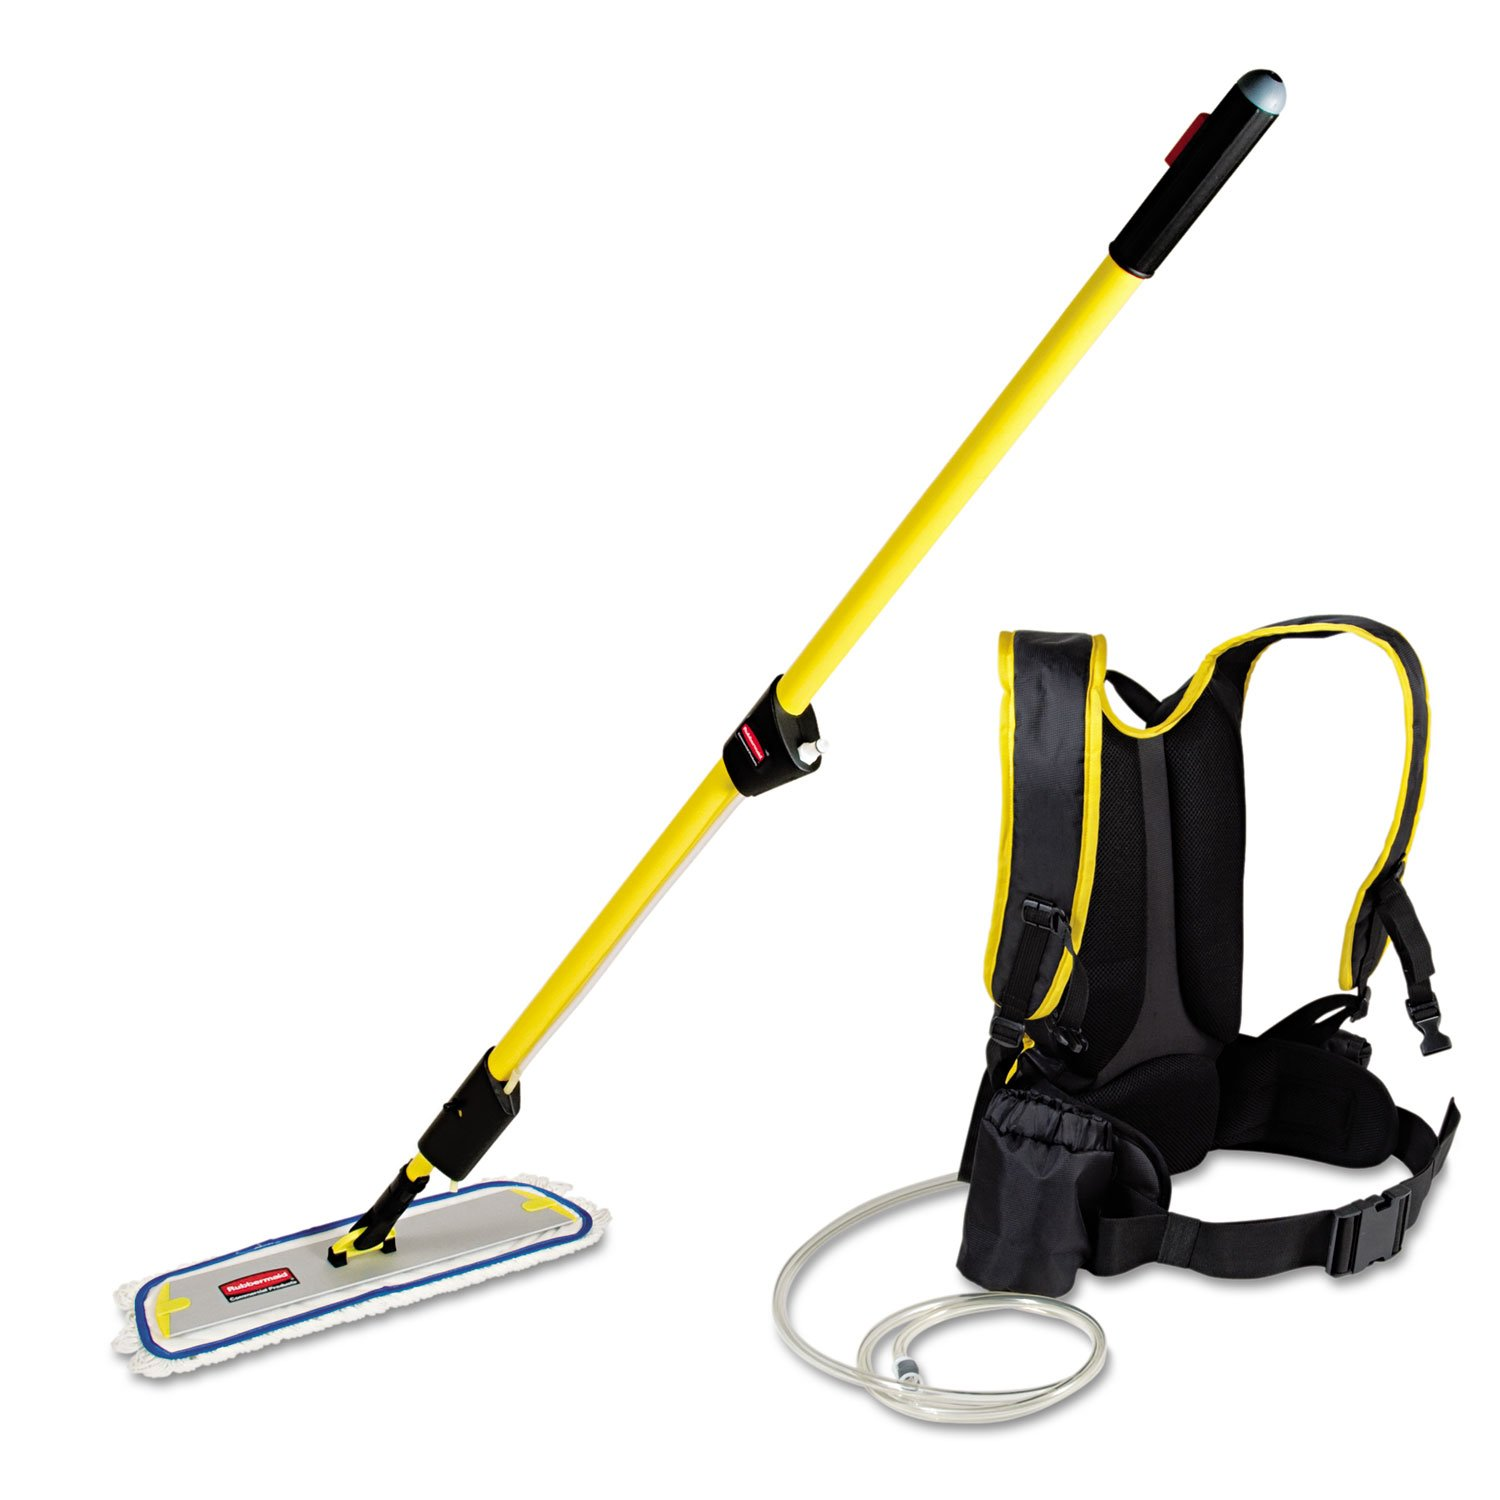 Nice Amazon.com: Rubbermaid RCP Q979 Flow Finish Floor Cleaning System With  Backpack, Flat Mop/Frame, And Trigger Handle: Home U0026 Kitchen